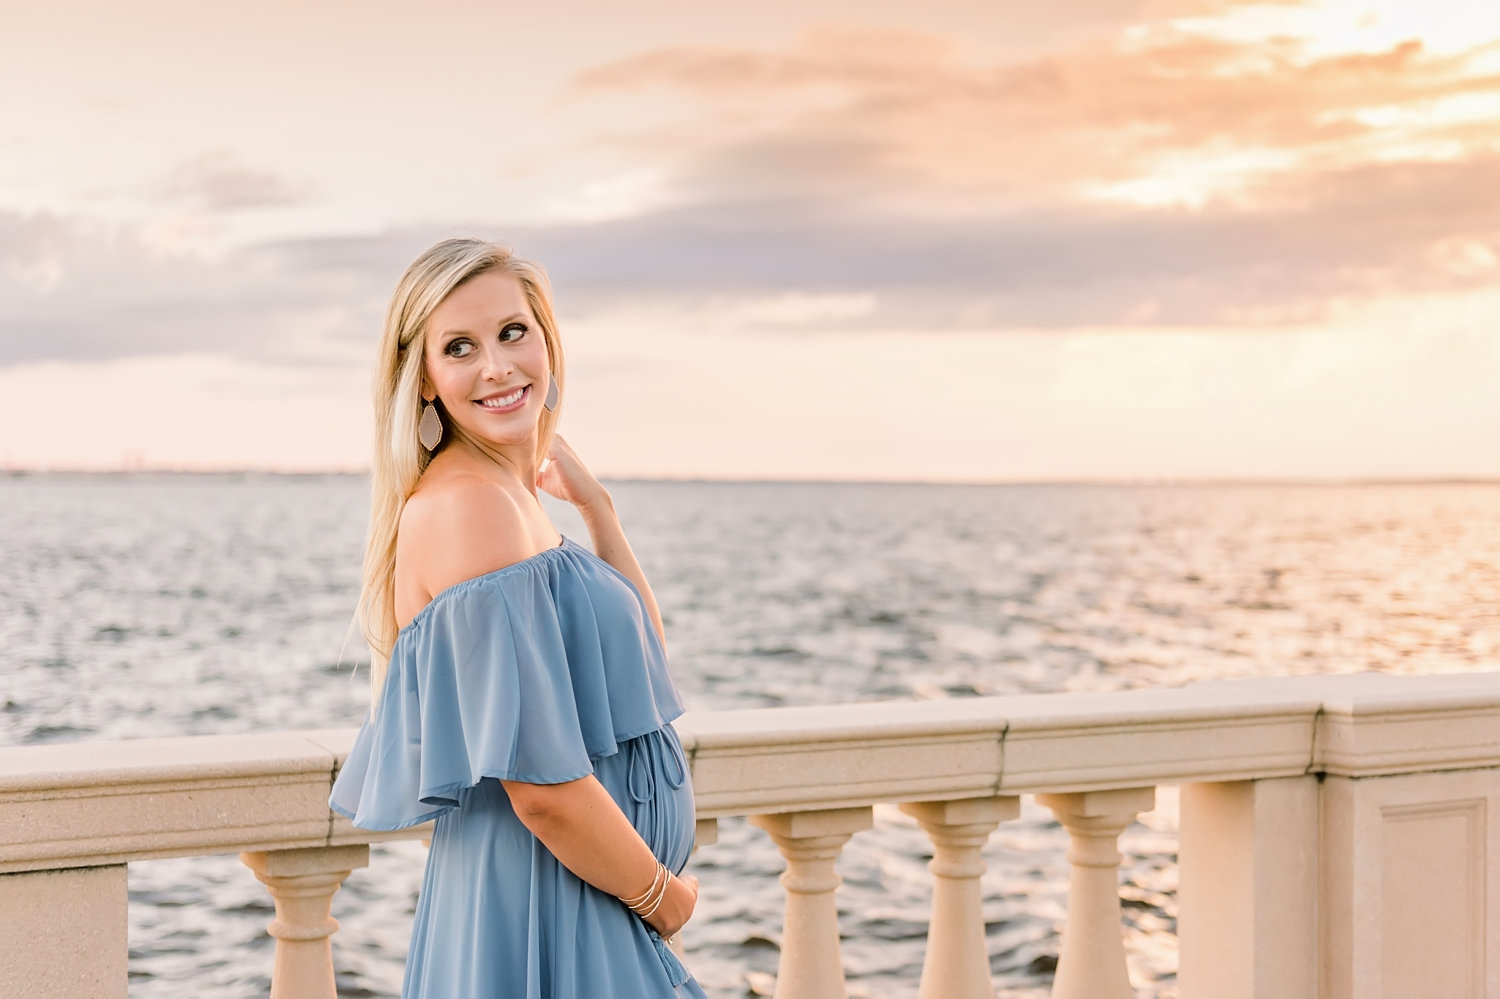 pregnant blonde woman smiling over her shoulder, old world architectural elements and the ocean behind her